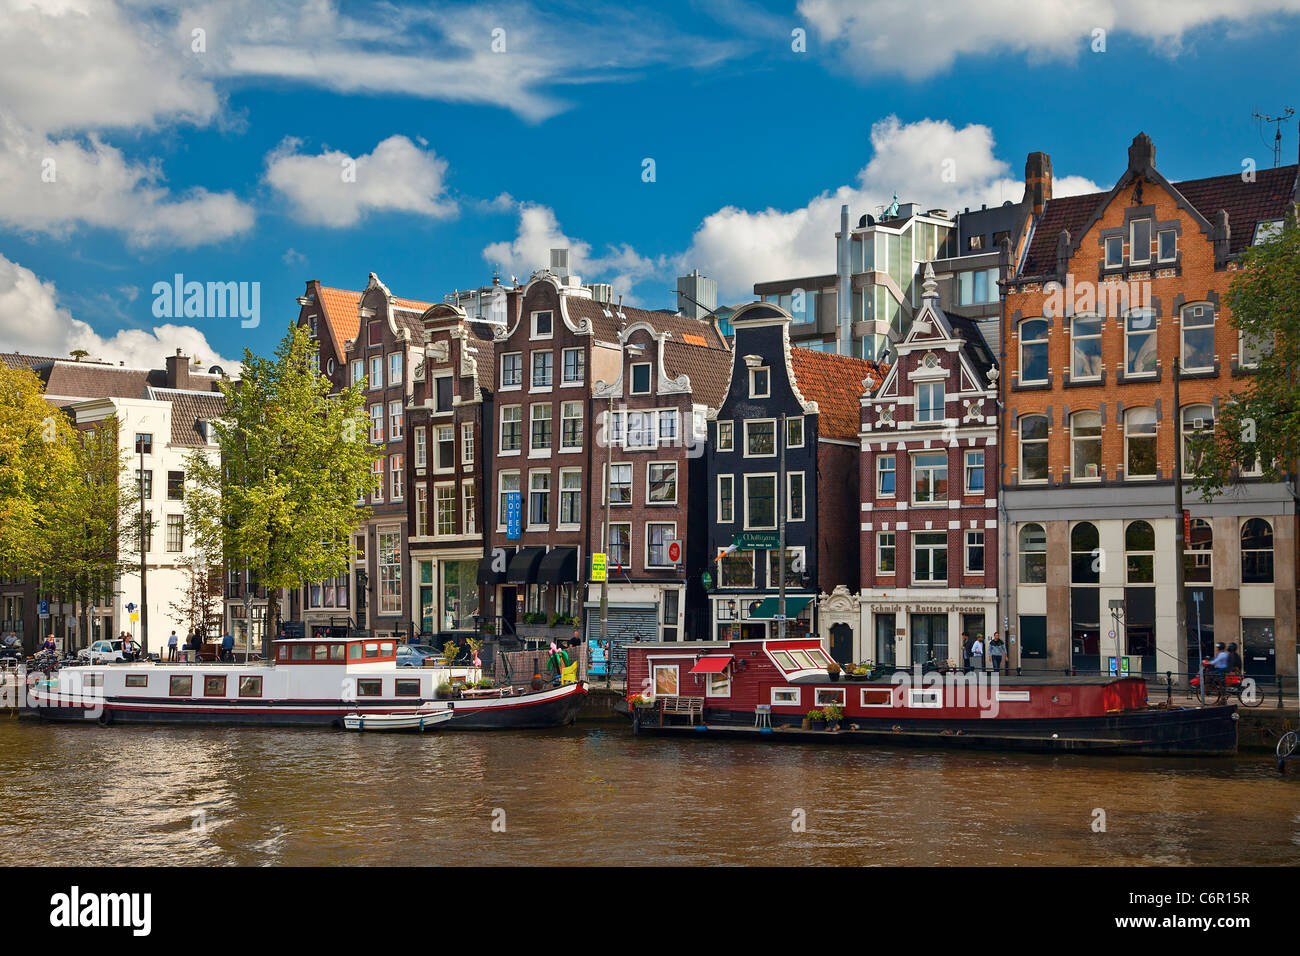 Europe, Netherlands, Canal in Amsterdam - Stock Image